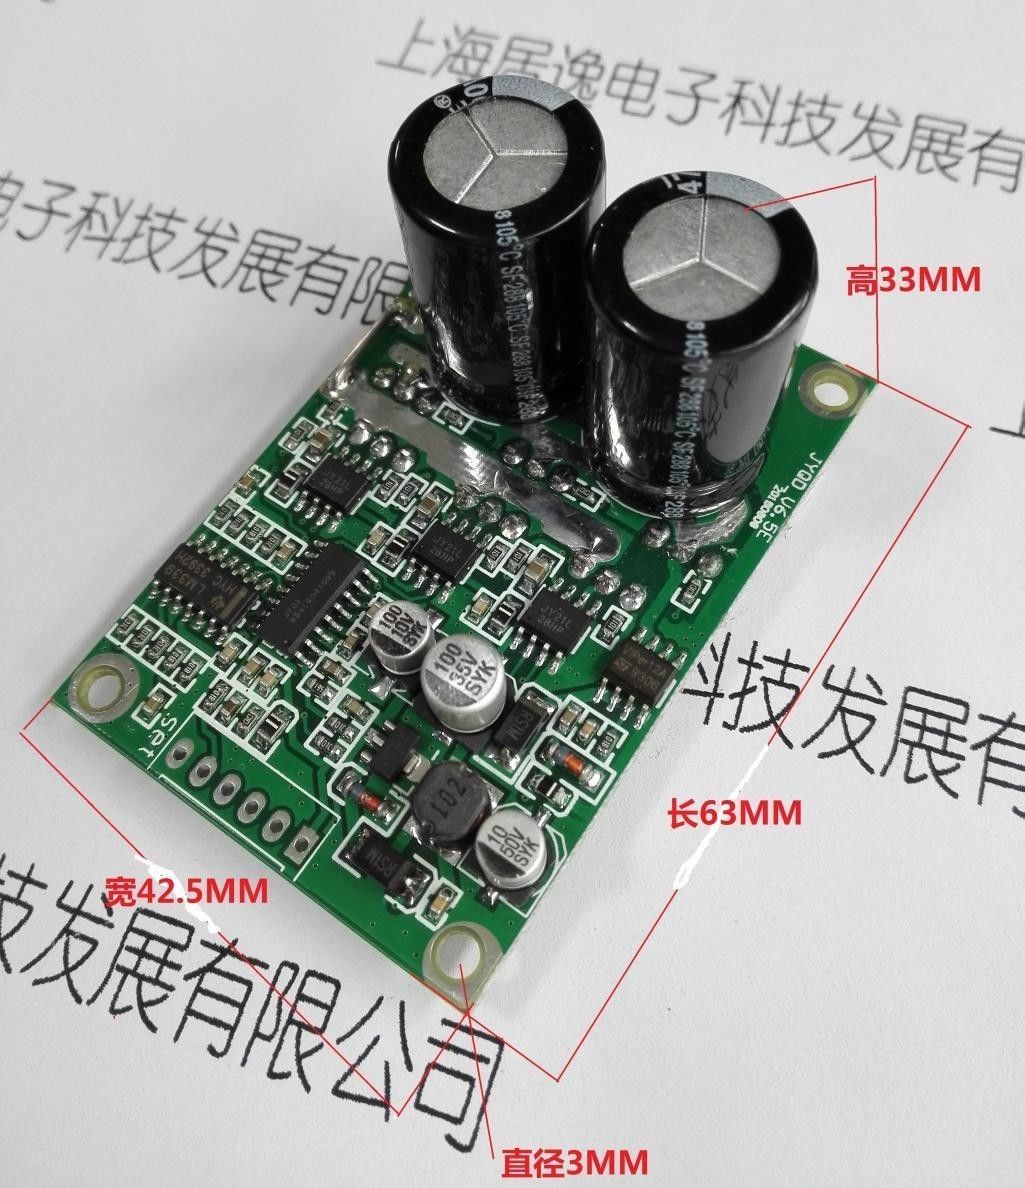 Dc 36v 48v 72v 60v 700w Brushless Motor Drive Board Balanced Car Buy 1200w Electric Bicycle Bldc Controller In Integrated Circuits From Electronic Components Supplies On